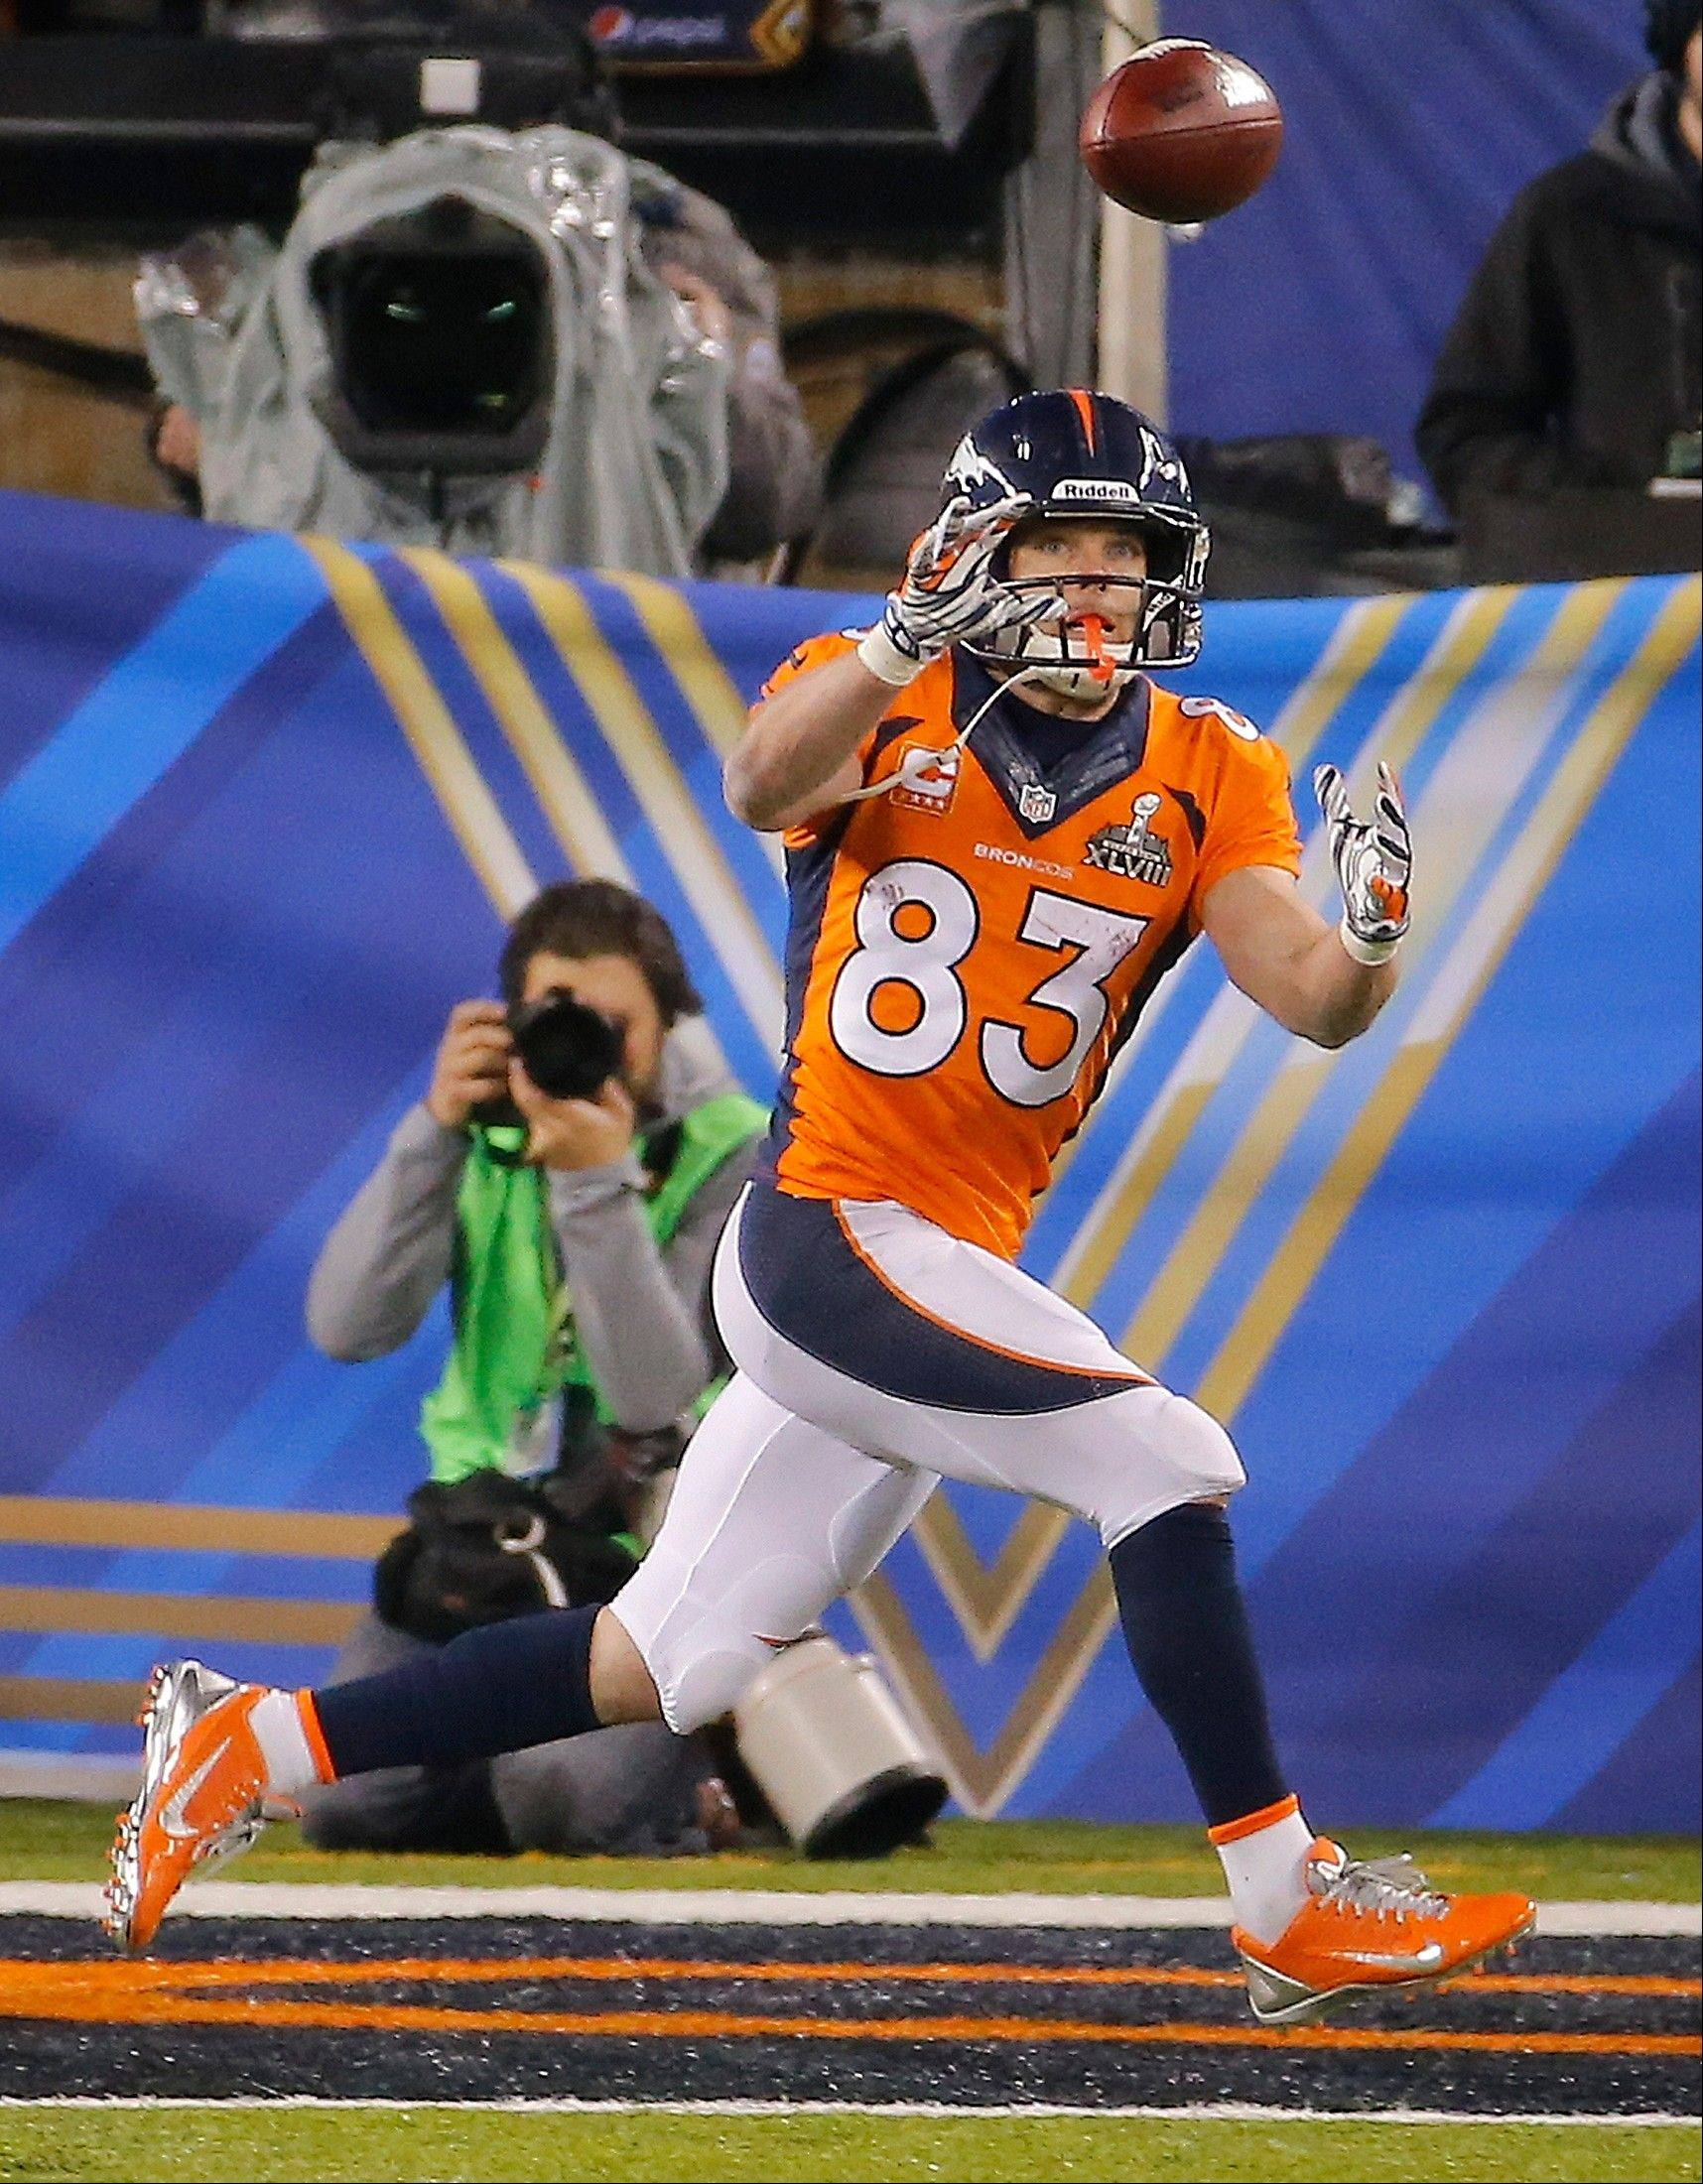 Denver Broncos wide receiver Wes Welker (83) makes a catch for a two-point conversion during the second half.